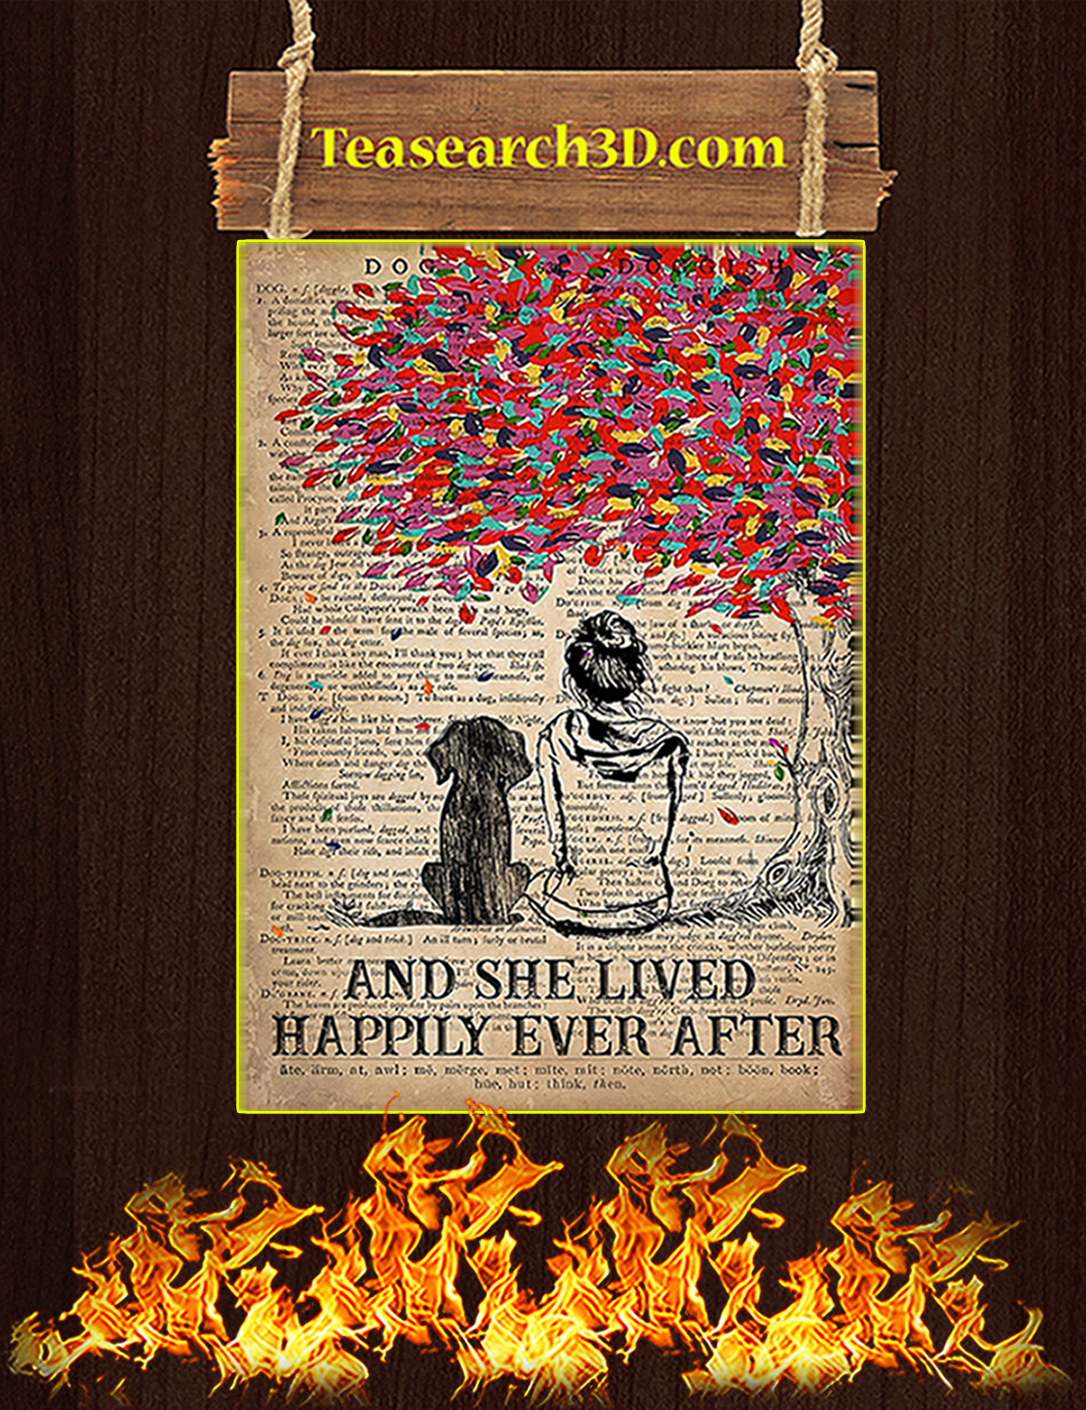 Dog And She Lived Happily Ever After Poster A2